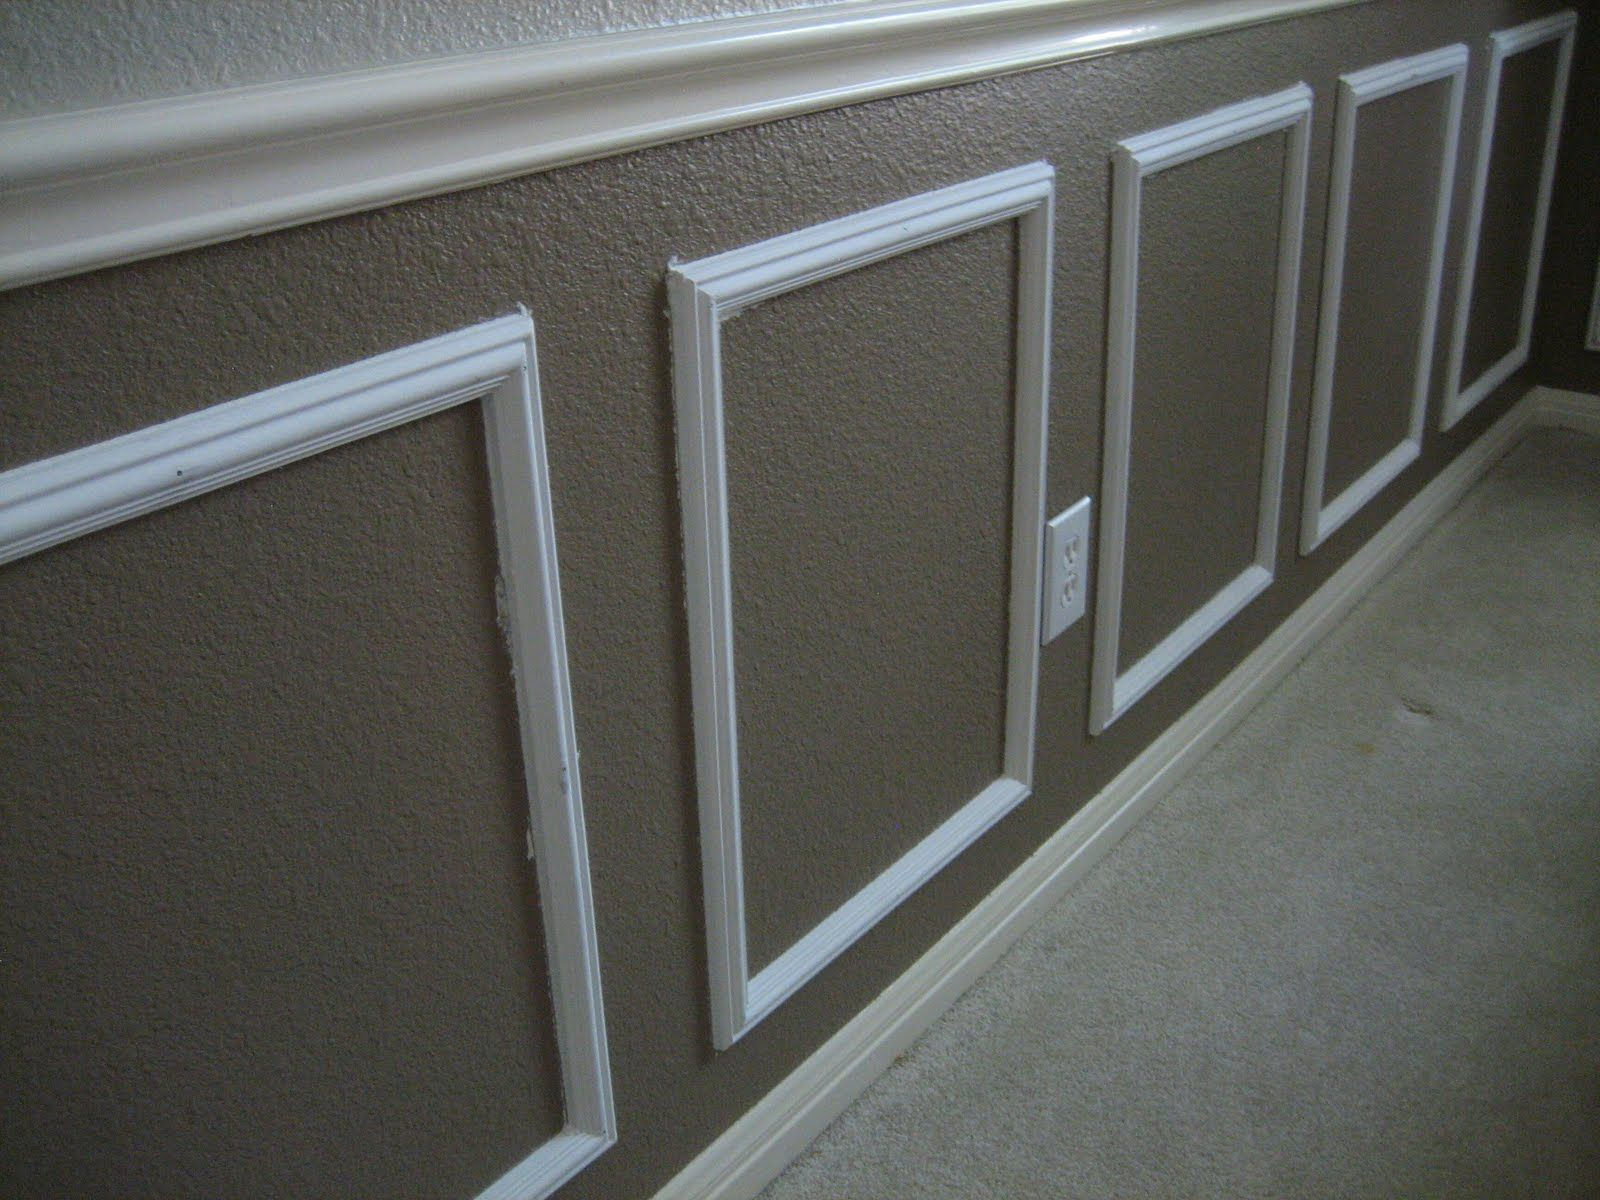 Wainscoting Is Installing Wooden Trim And Panels In A